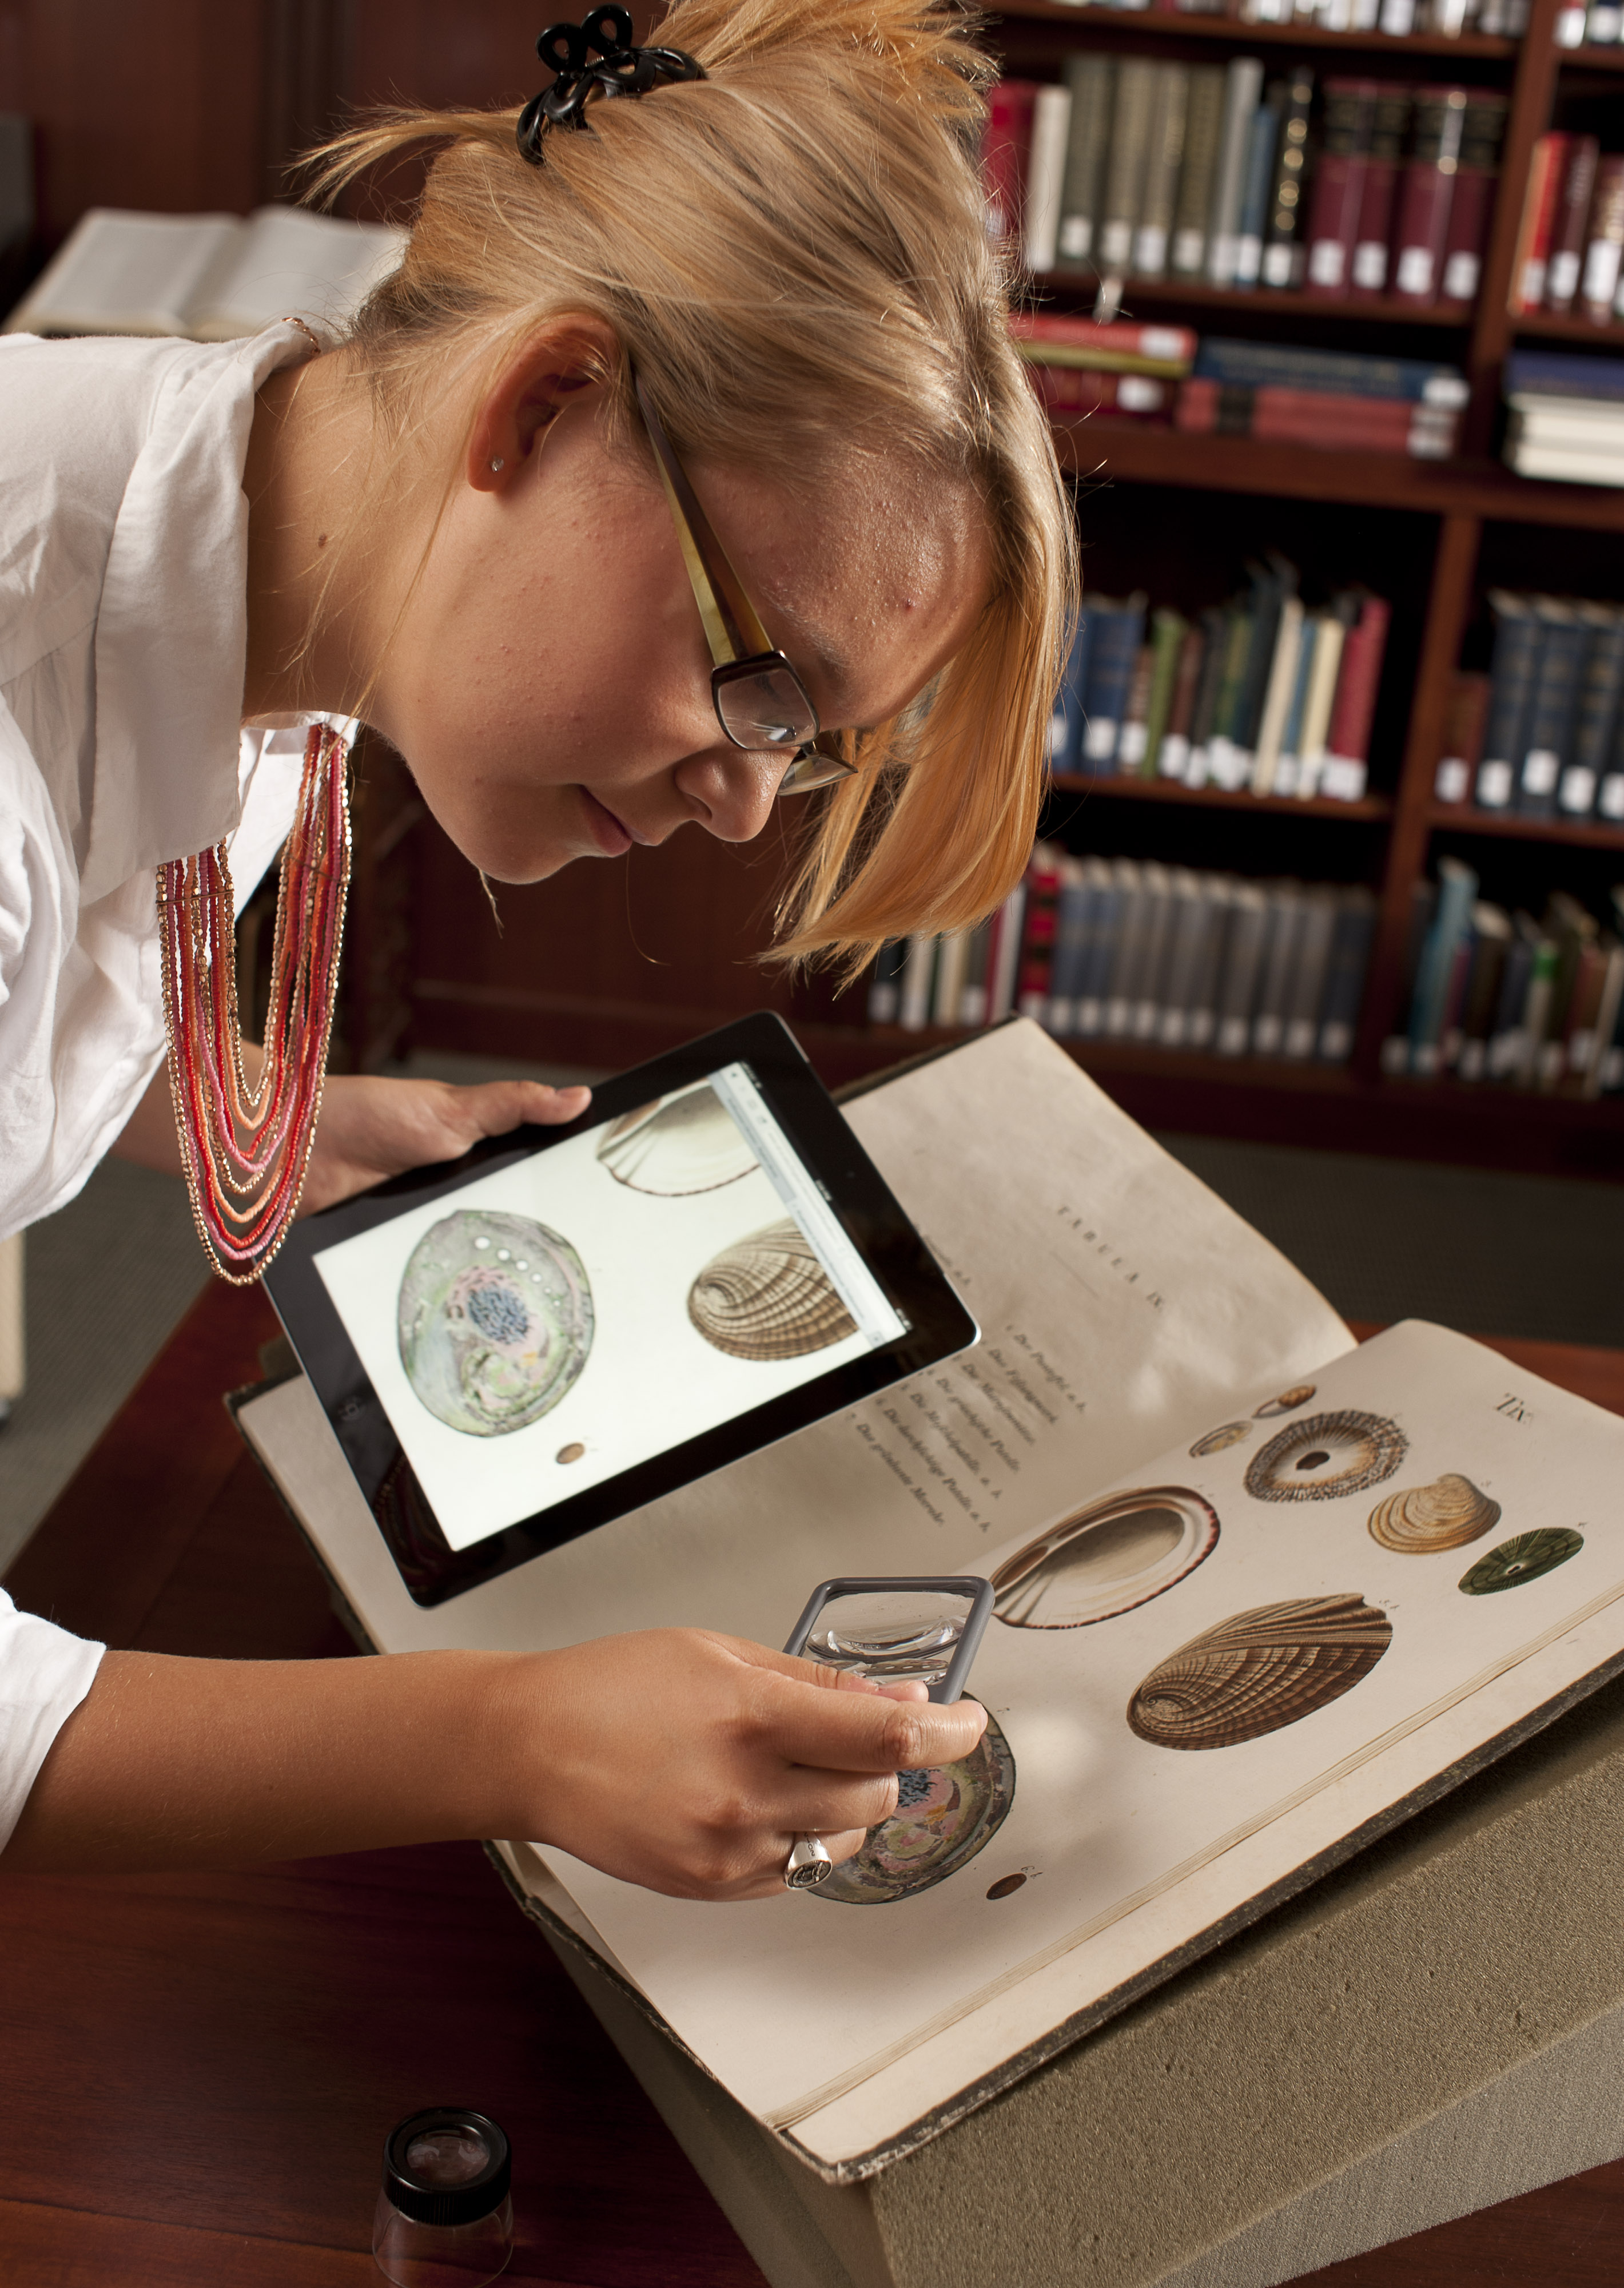 Intern with ipad and natural history book